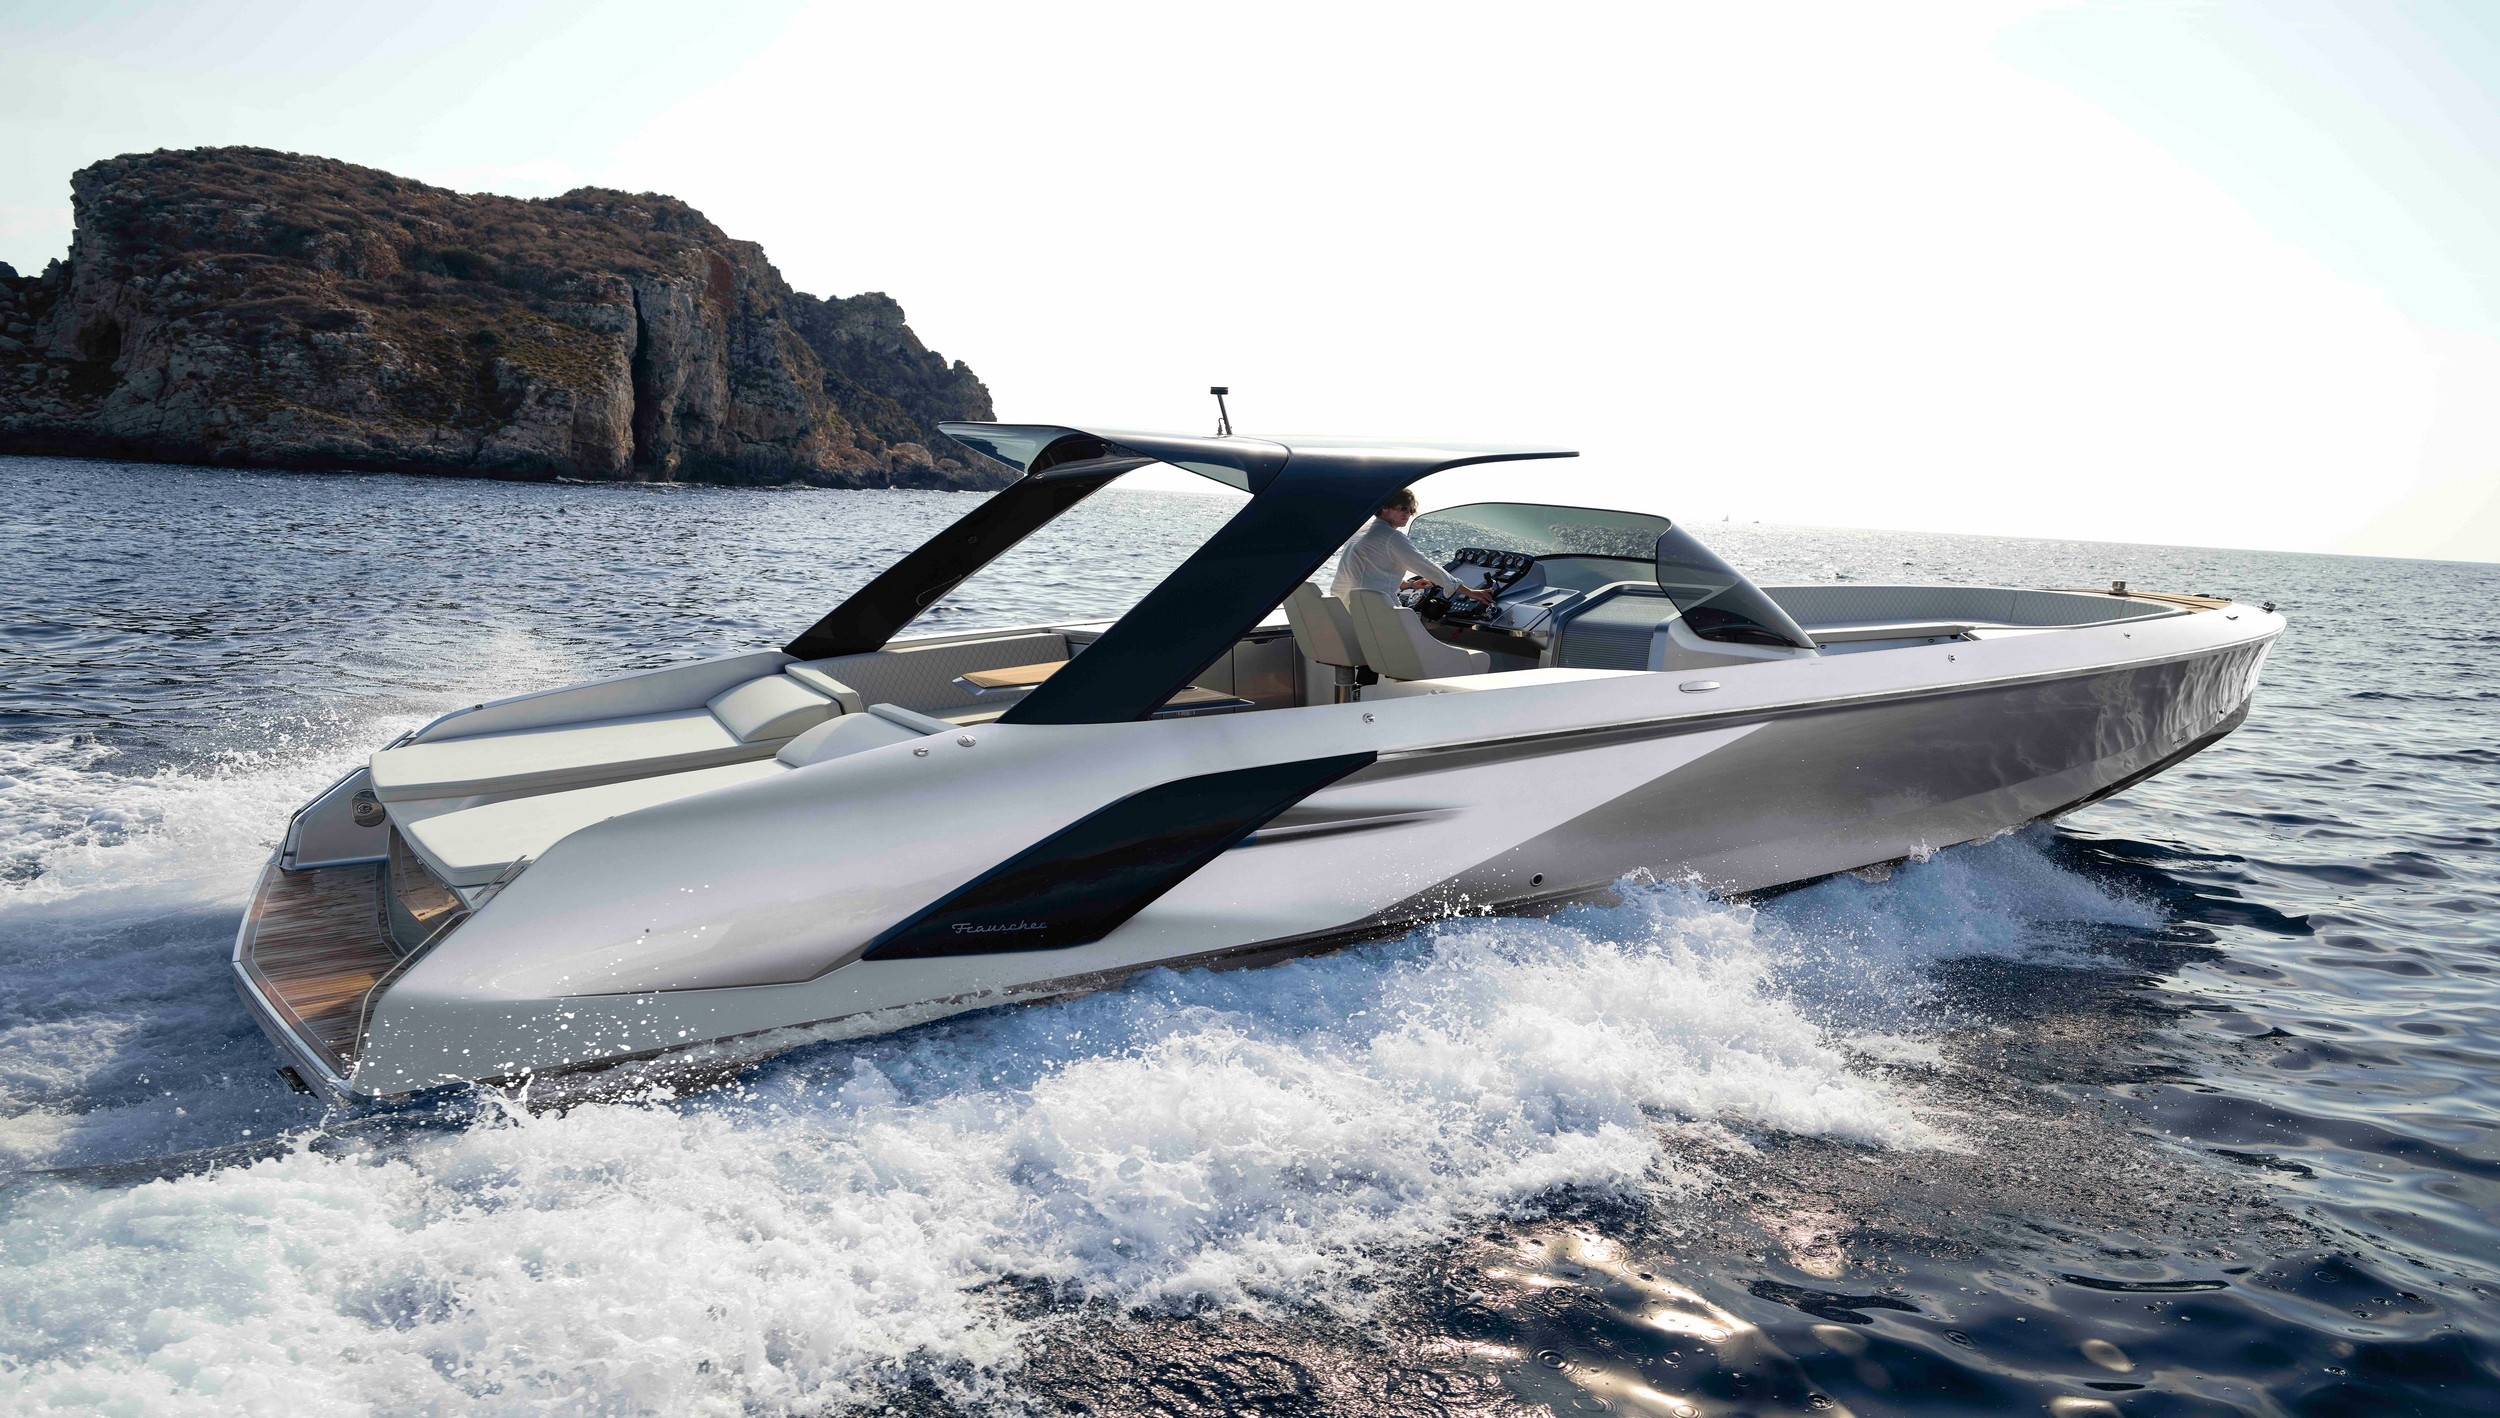 Frauscher 1414 Demon Air in anteprima mondiale a Cannes - Quotidiano Motori